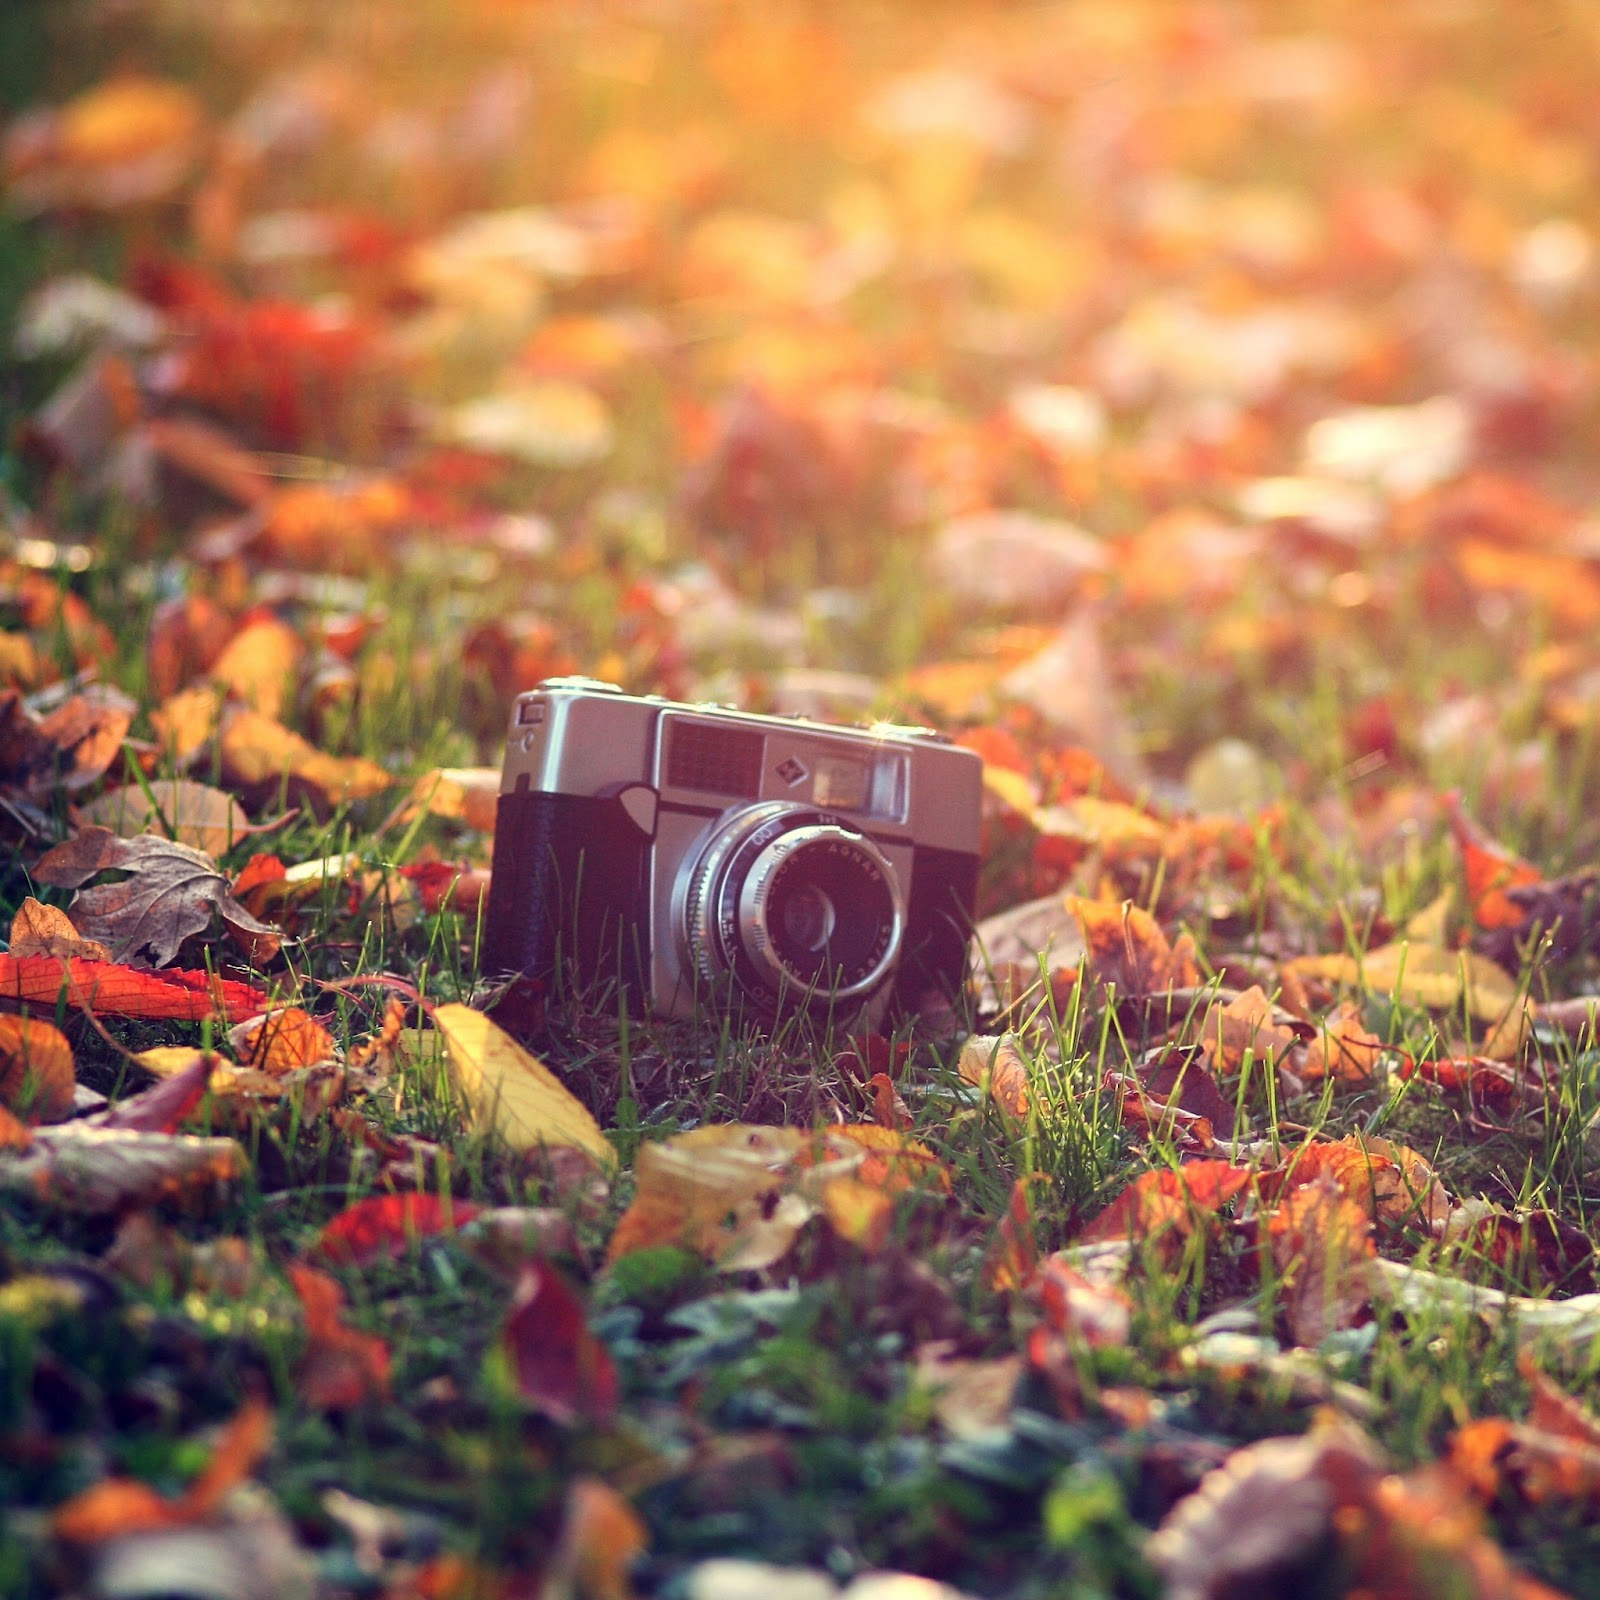 Autumn Themed HD Wallpapers for The New iPad - Gadgets ...